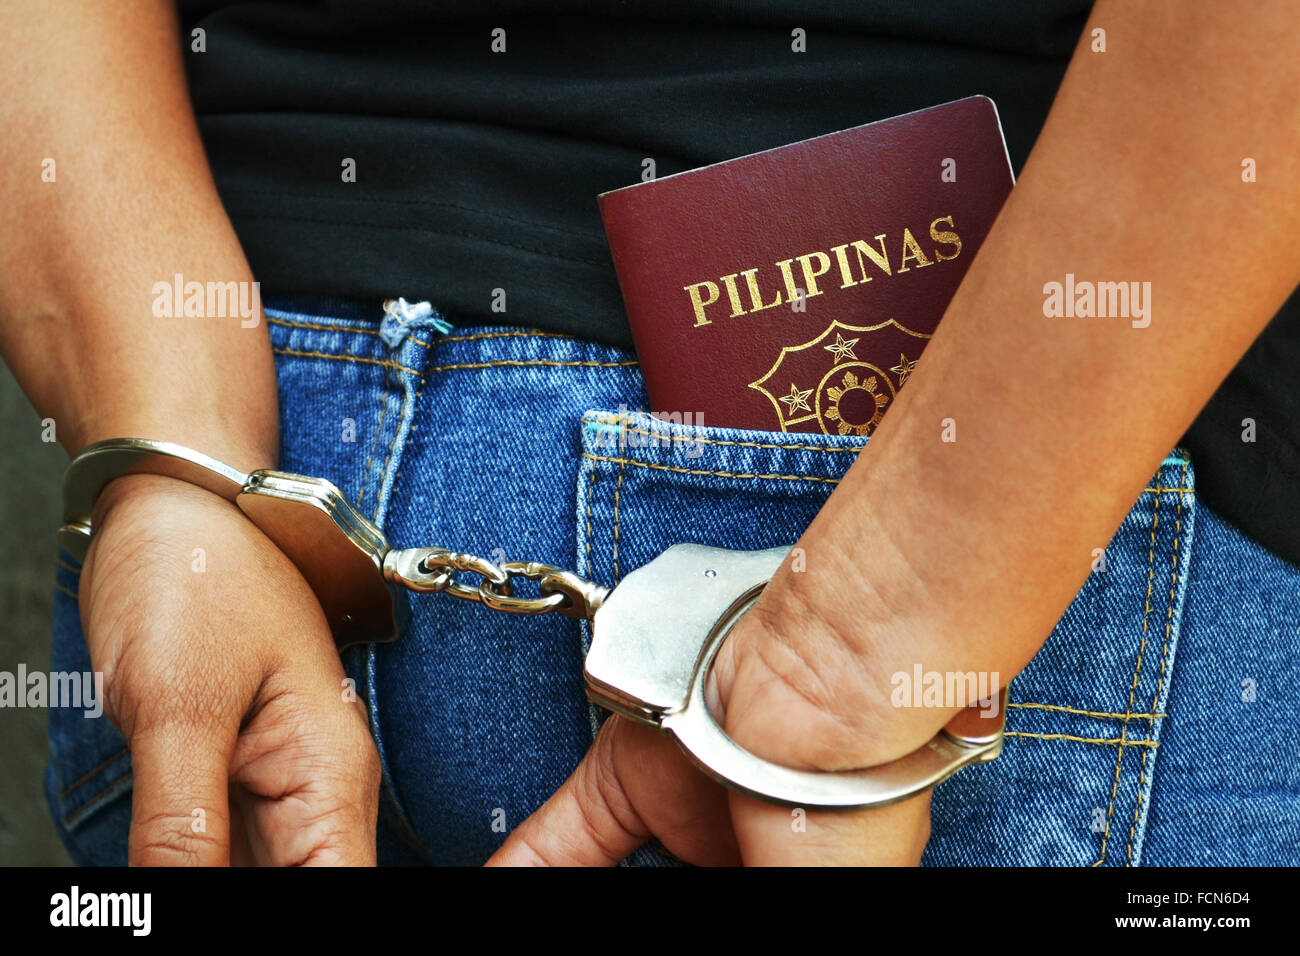 Arrested Filipino citizen with handcuffs and Filipino passport in the rear pocket - Stock Image